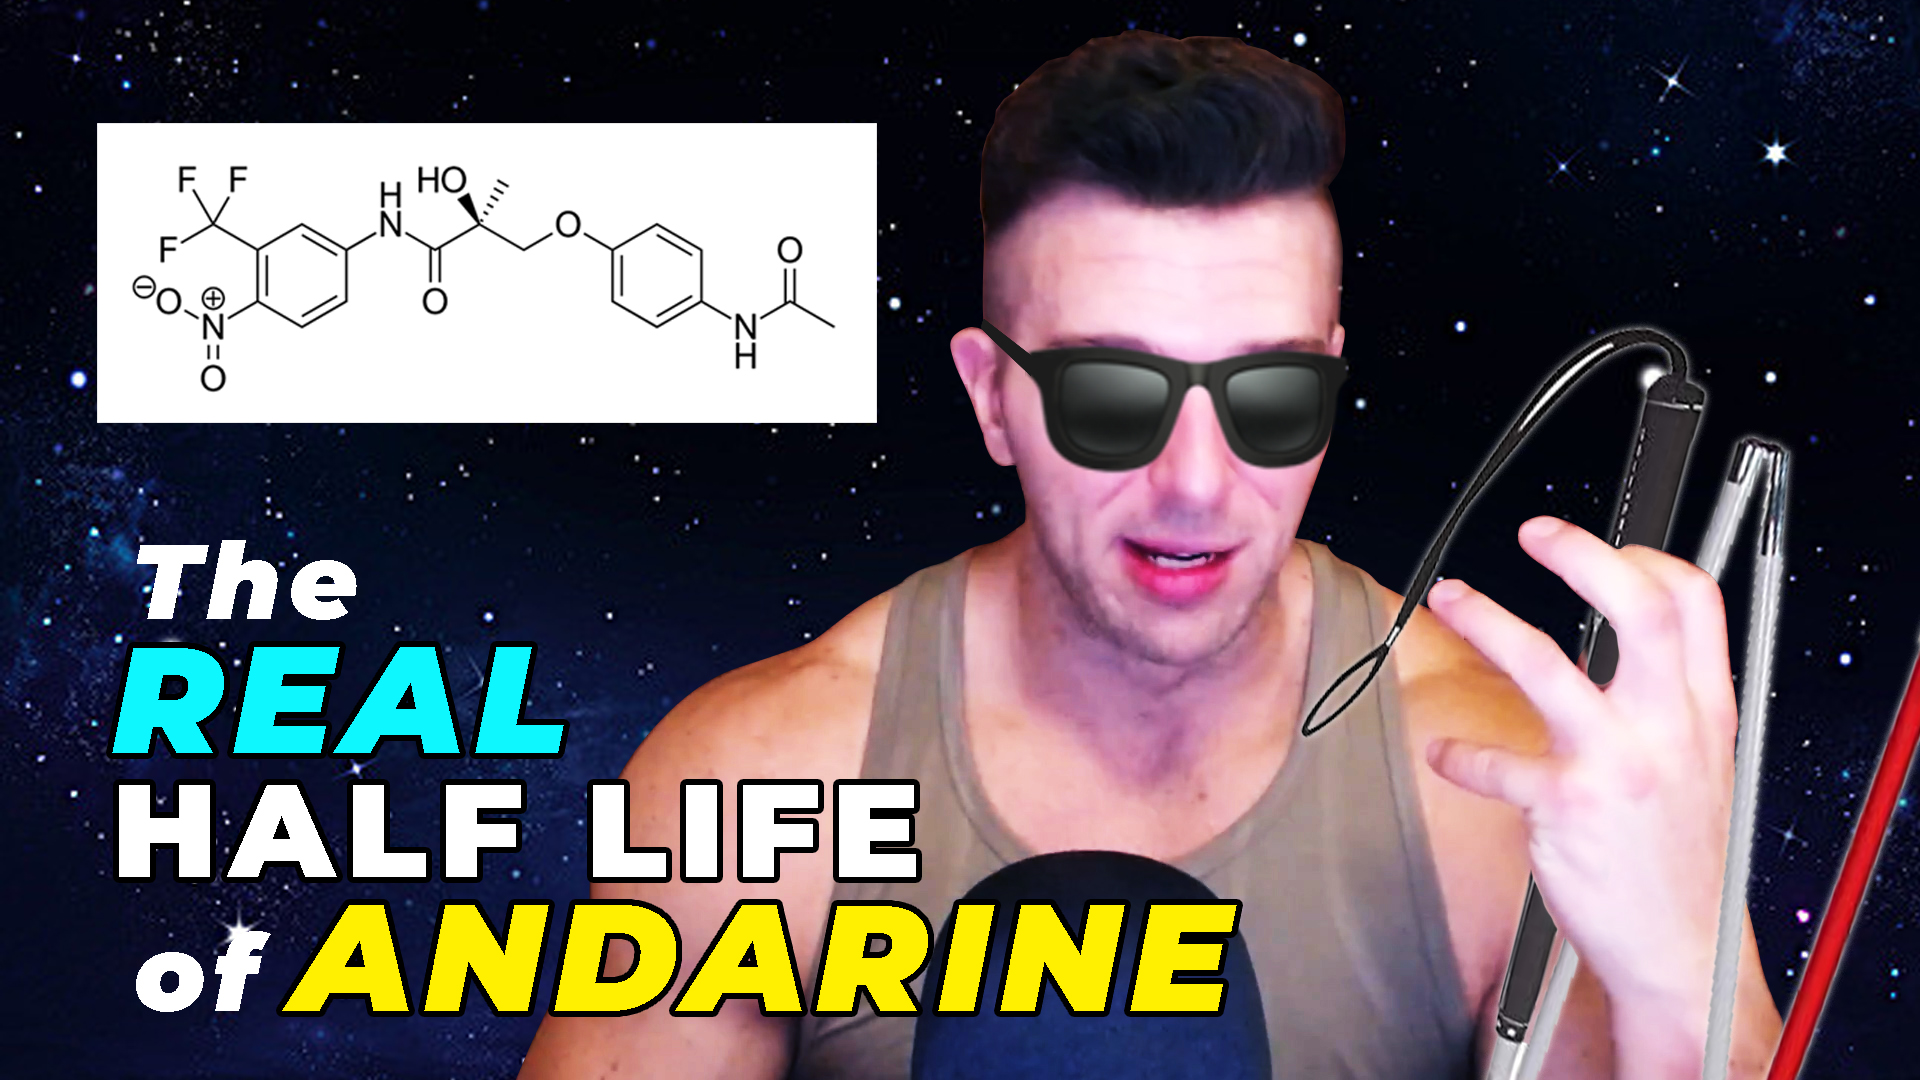 S4 (Andarine) chemical structure beside Derek pretending to be blind because of the long half-life of S4